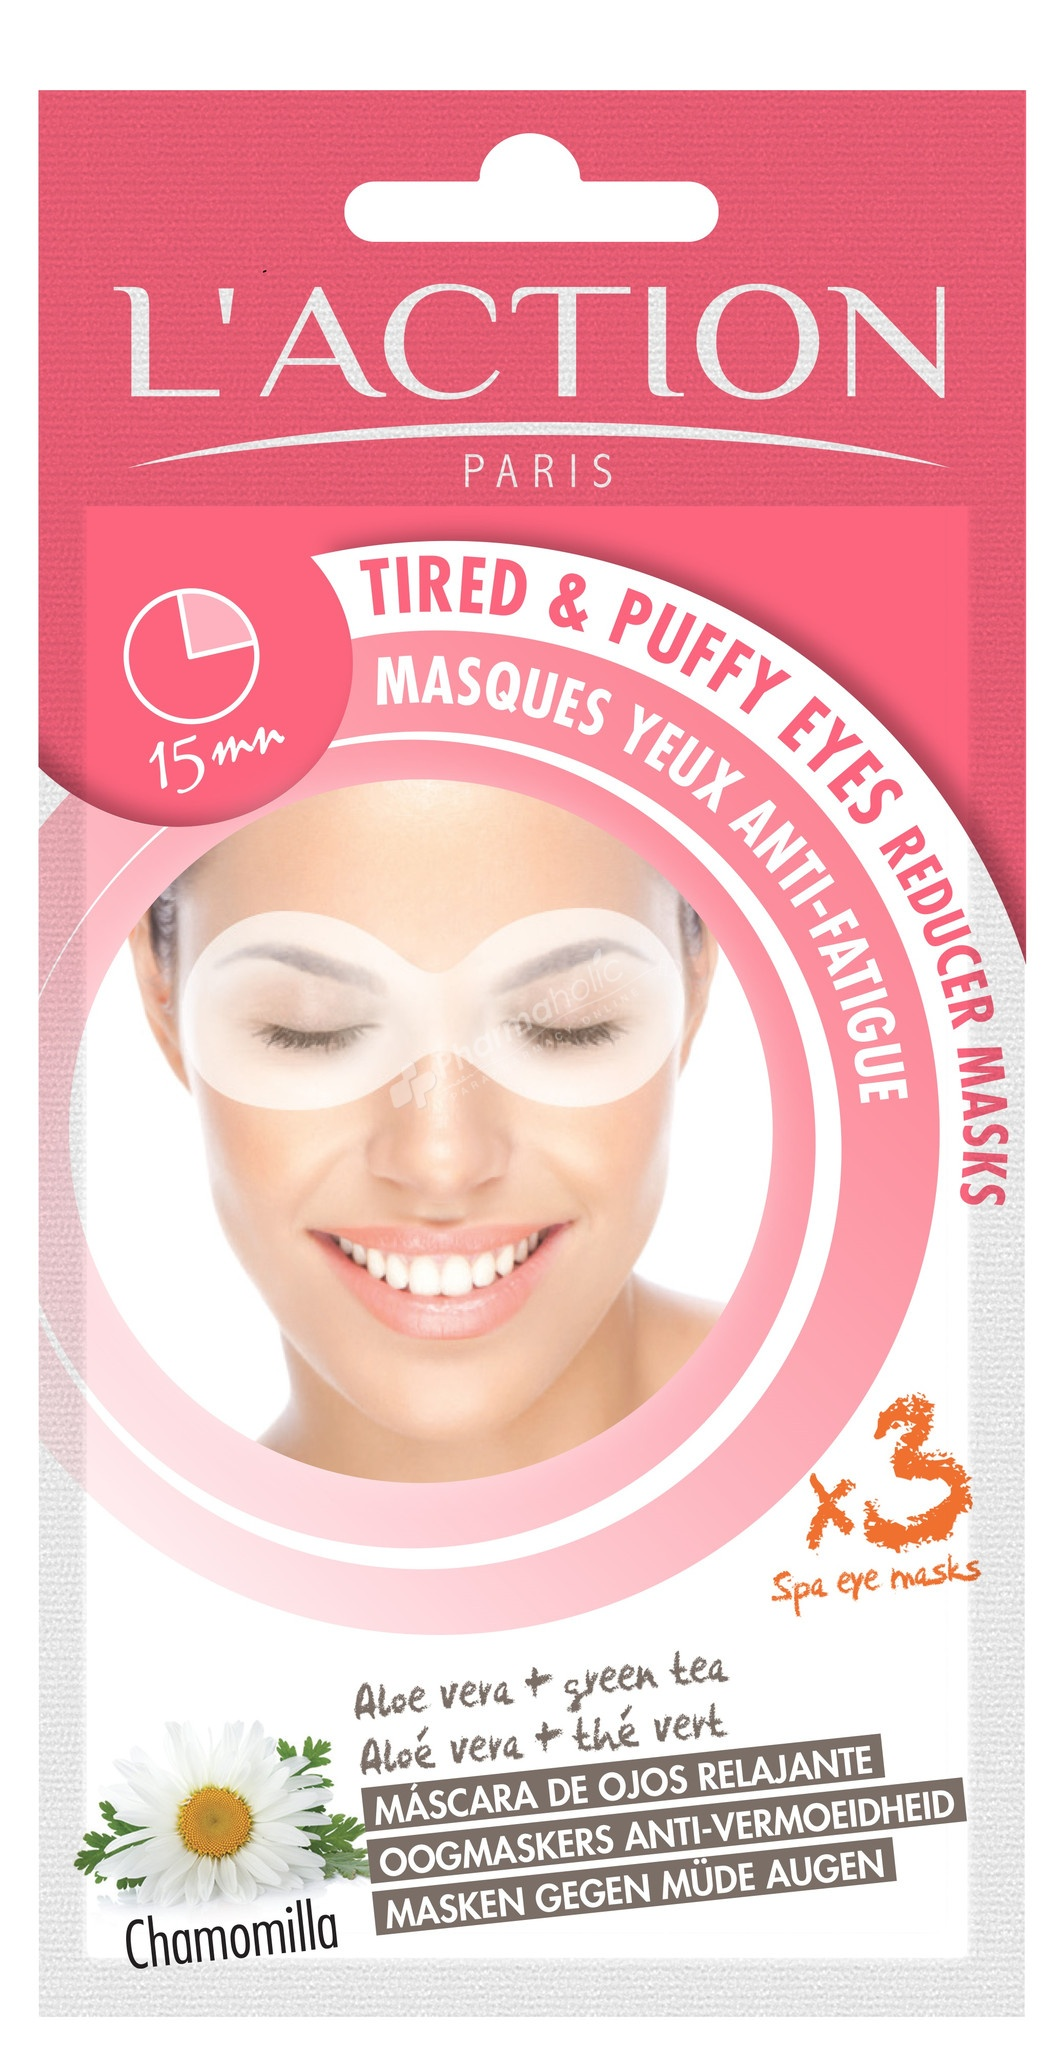 L'action Paris Tired and Puffy Eyes Reducer Spa Eye Masks